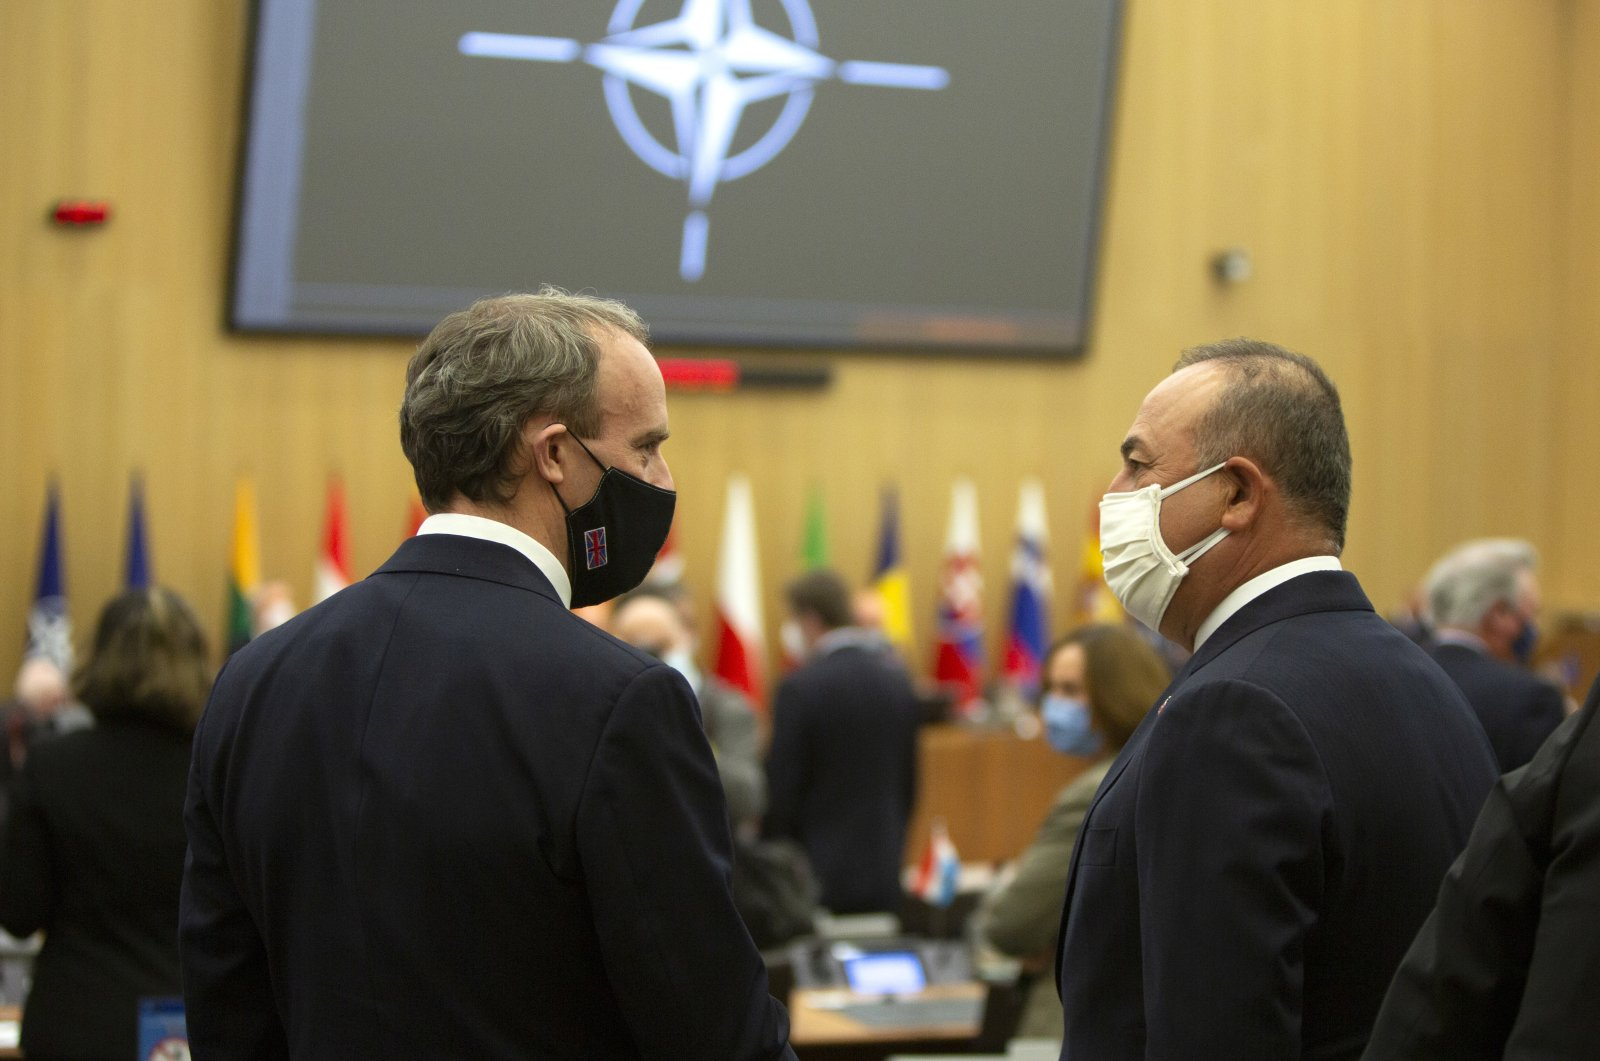 British Foreign Secretary Dominic Raab (L) speaks with Turkish Foreign Minister Mevlut Cavusoglu (R) during a meeting of NATO foreign ministers at NATO headquarters, Brussels, Belgium, March 23, 2021. (EPA)